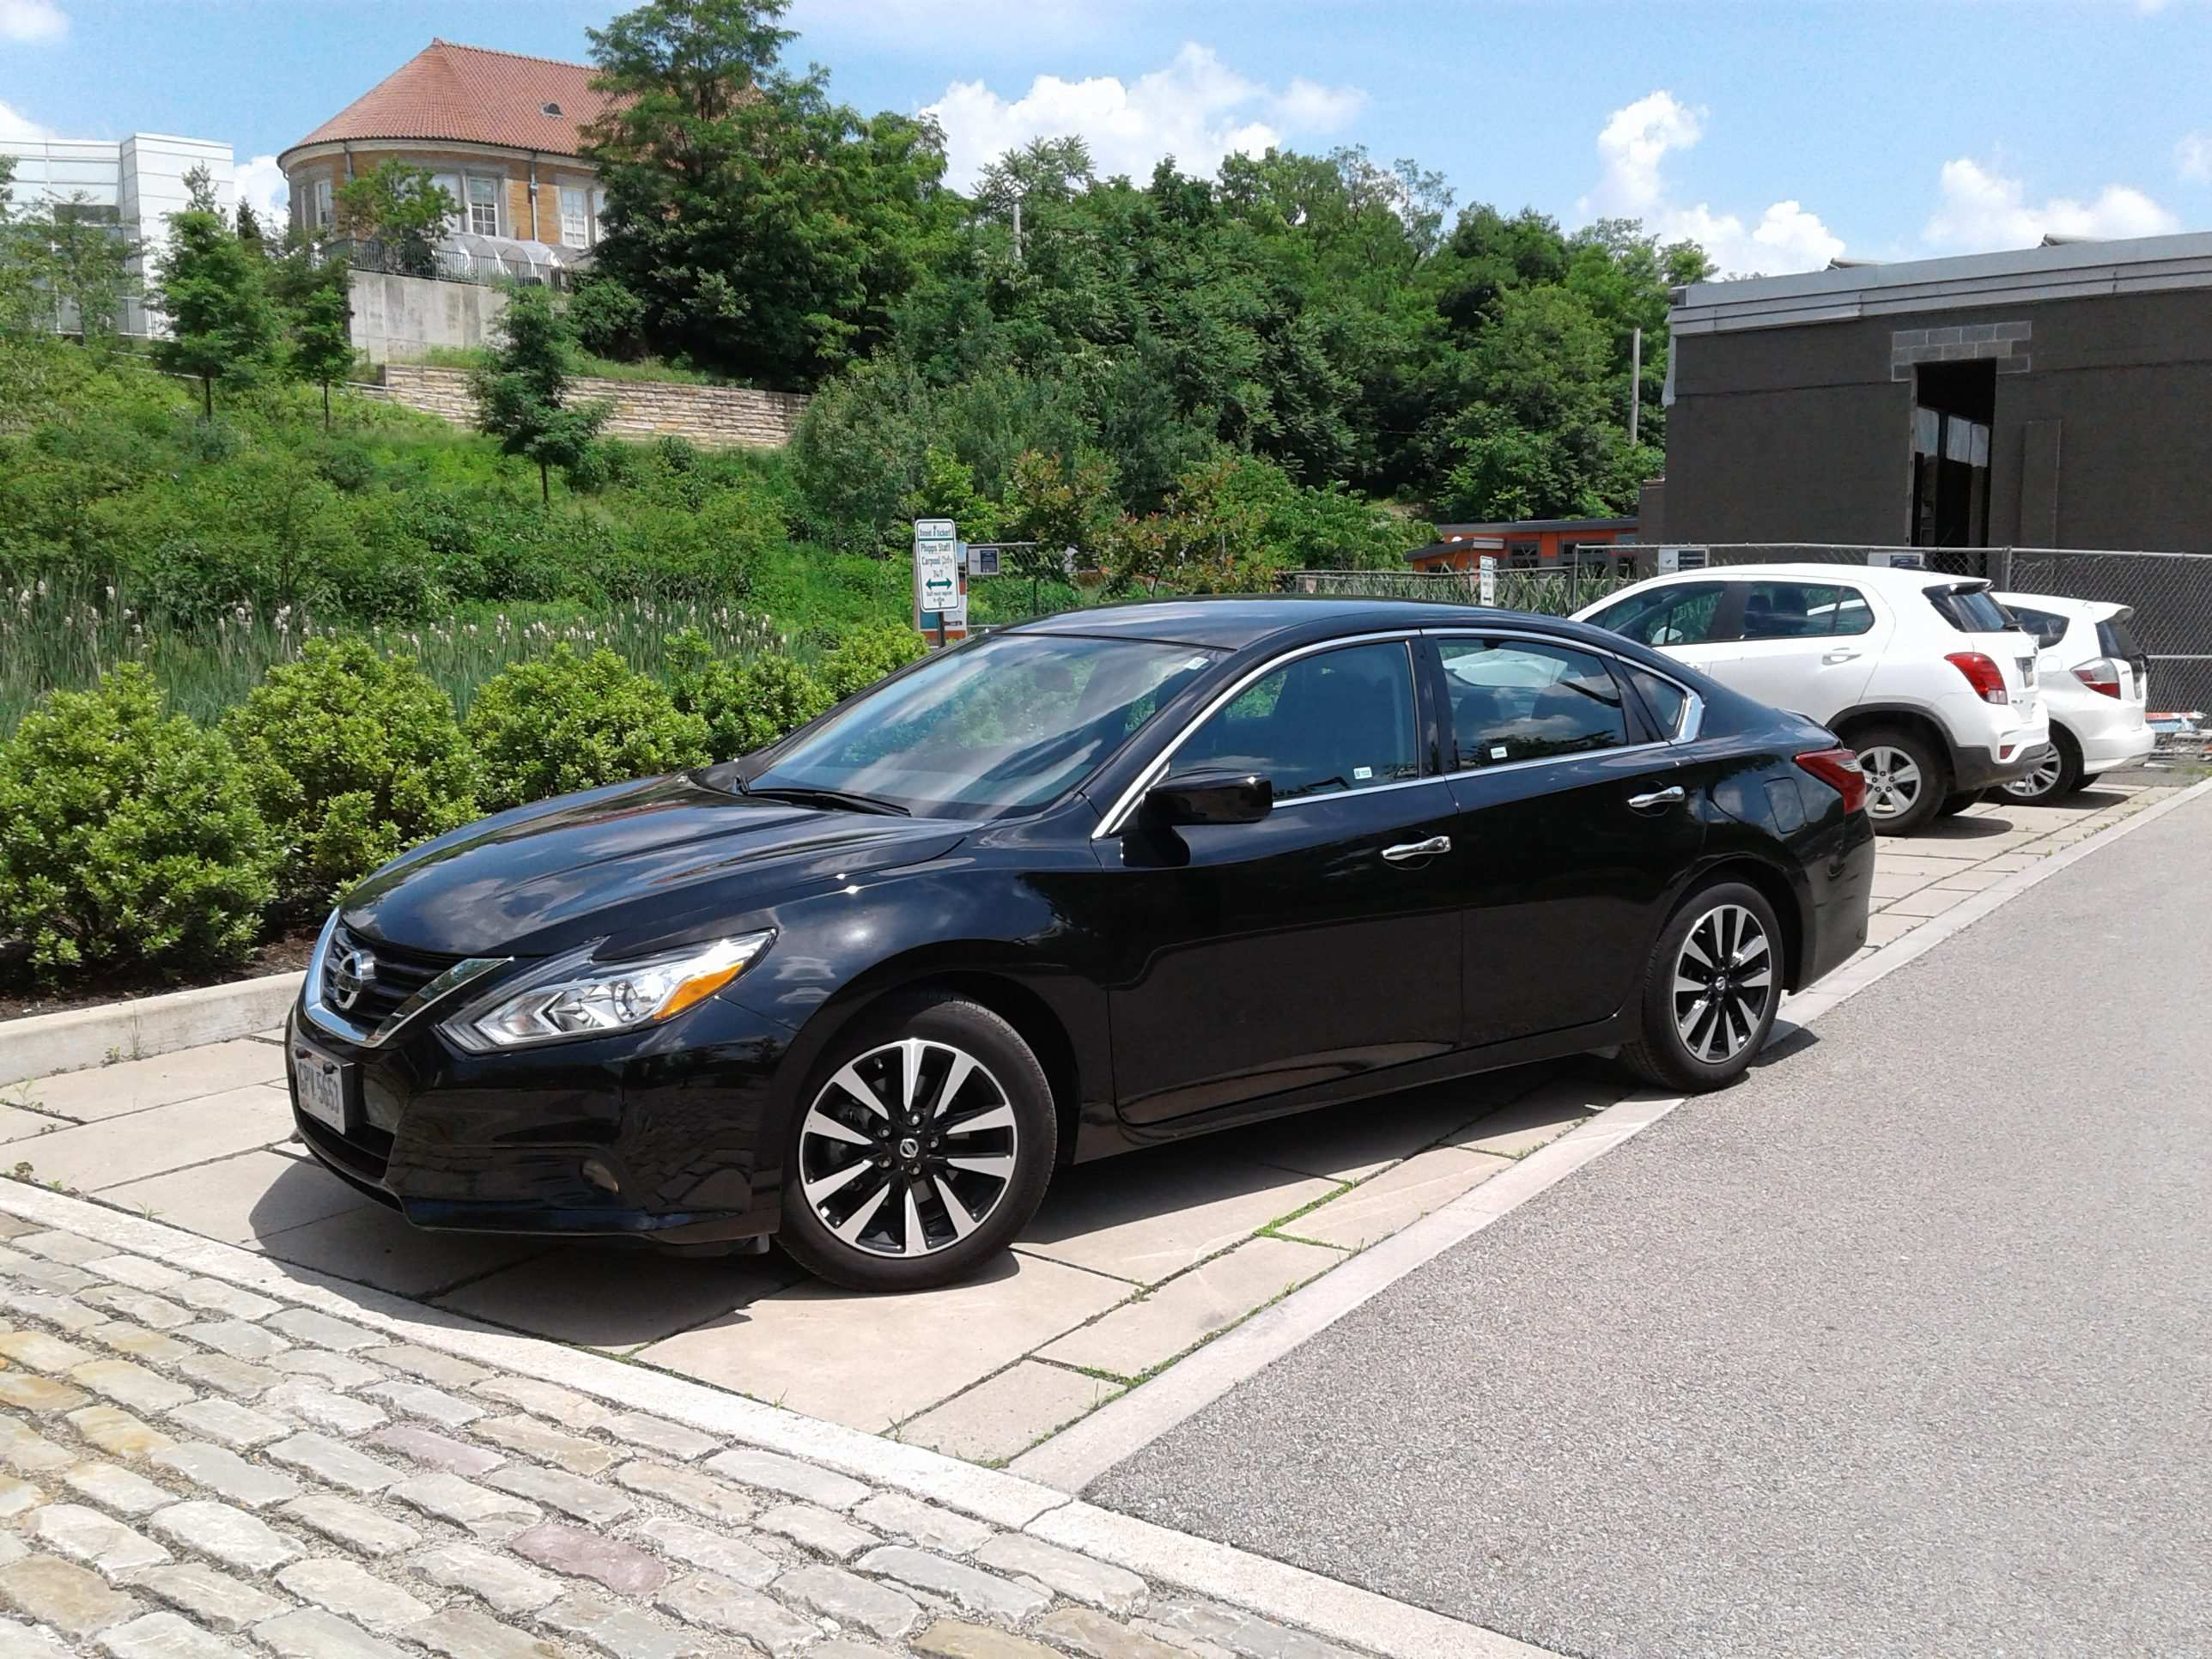 74 All New 2018 Nissan Altima Reviews Overview